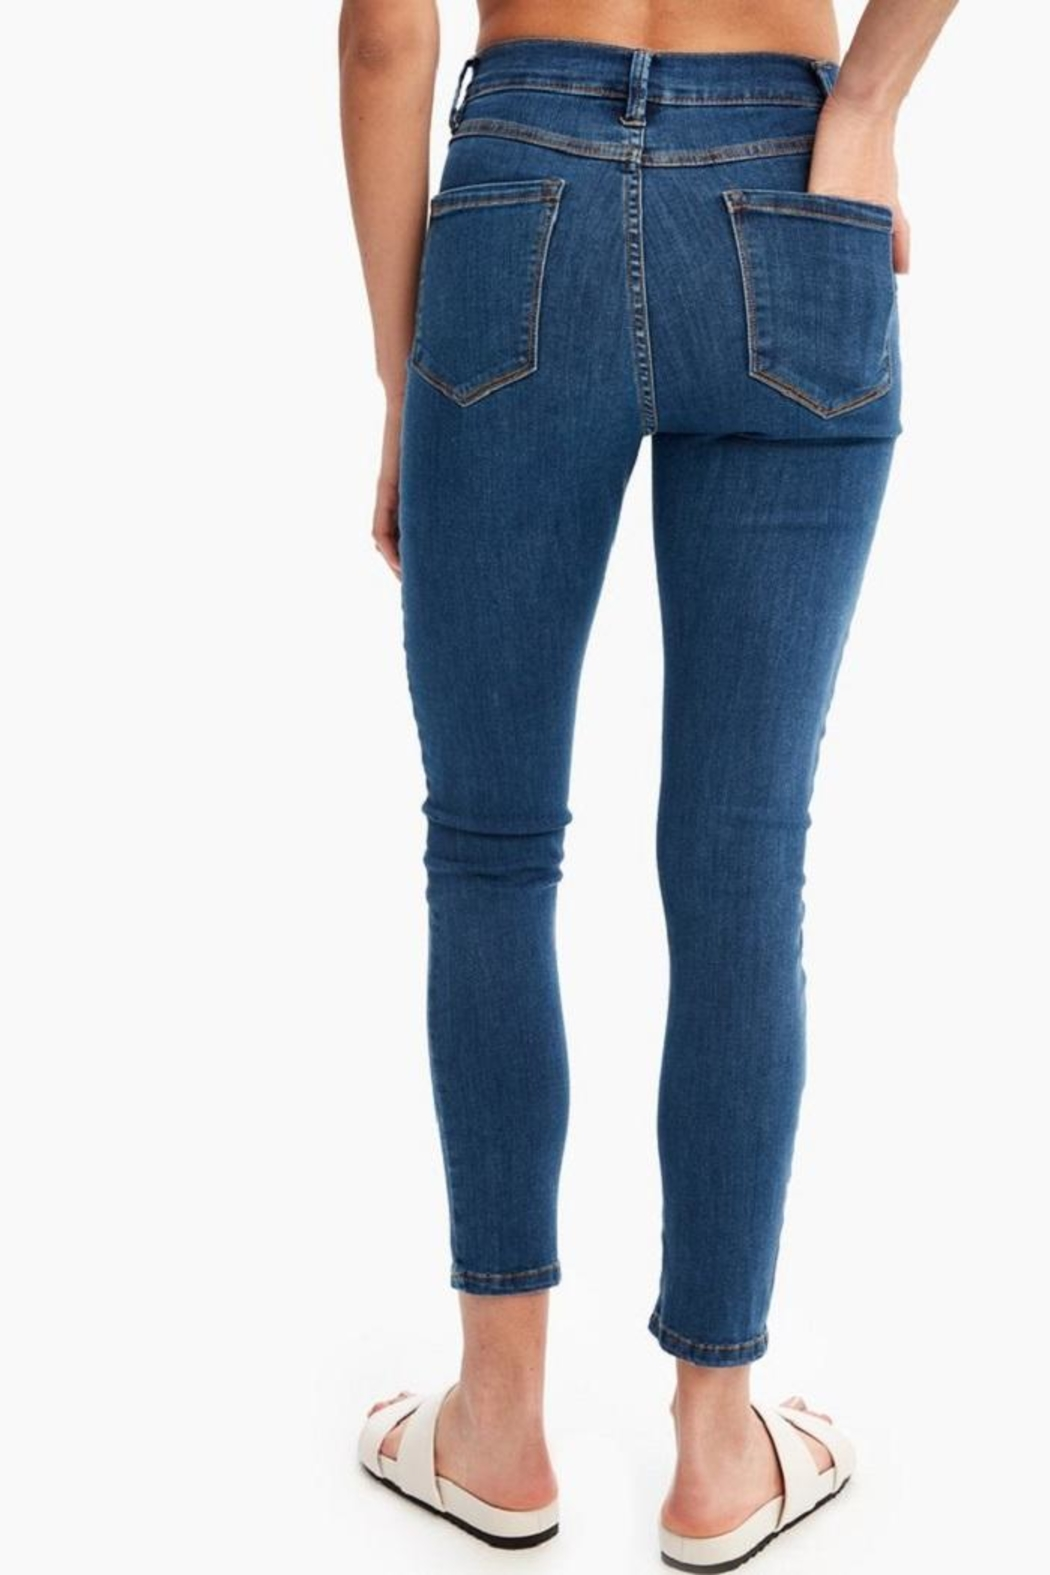 Lole Skinny High-Waisted Jeans - Side Cropped Image